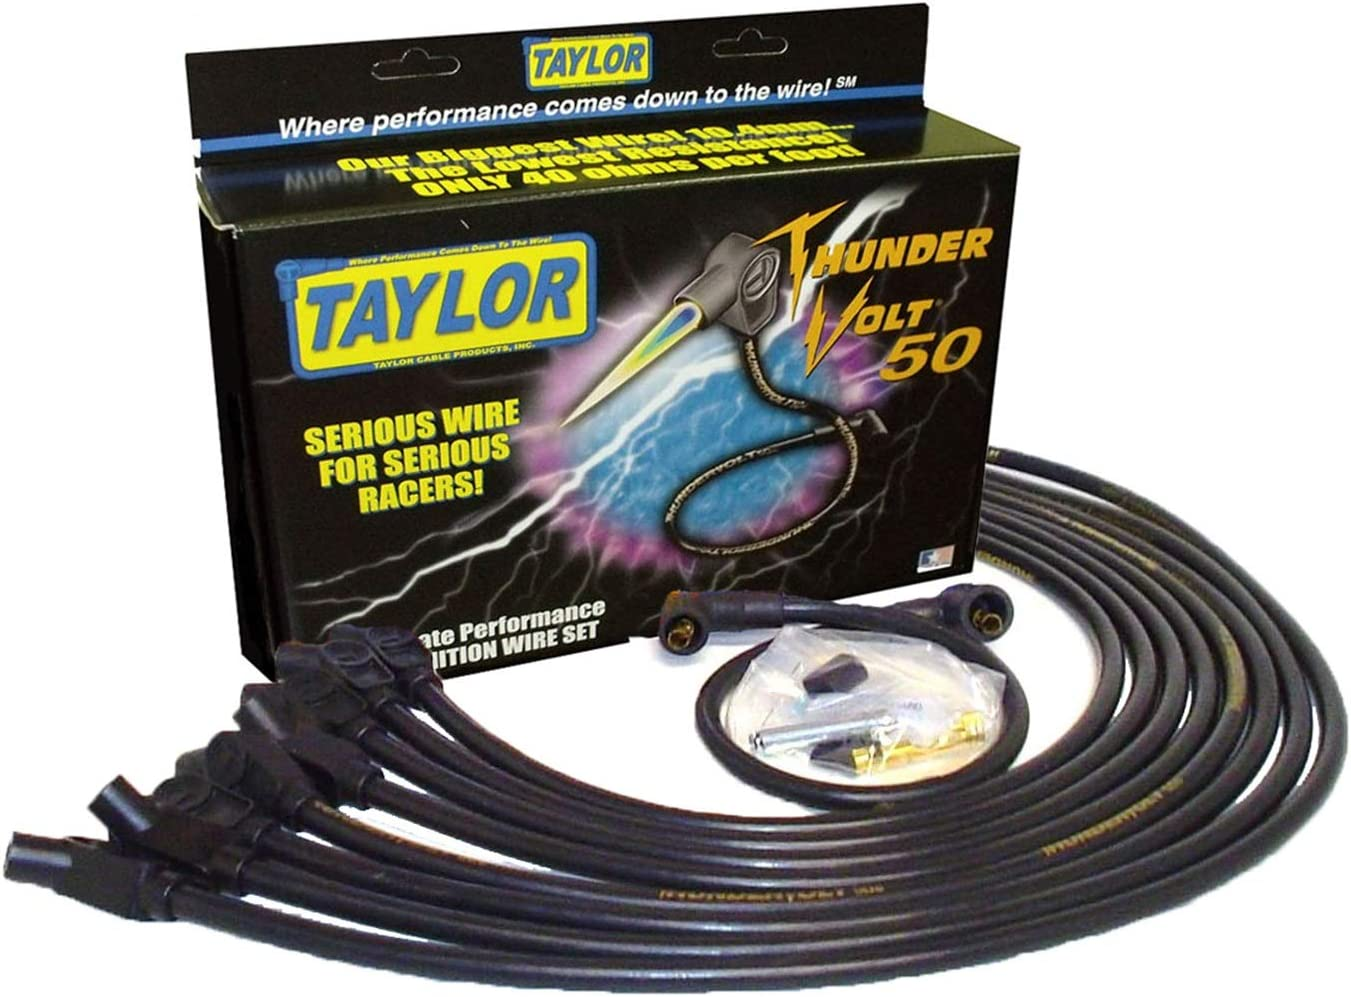 Taylor Super-cheap Cable 98032 ThunderVolt 50 Max 61% OFF Wire Set Ignition